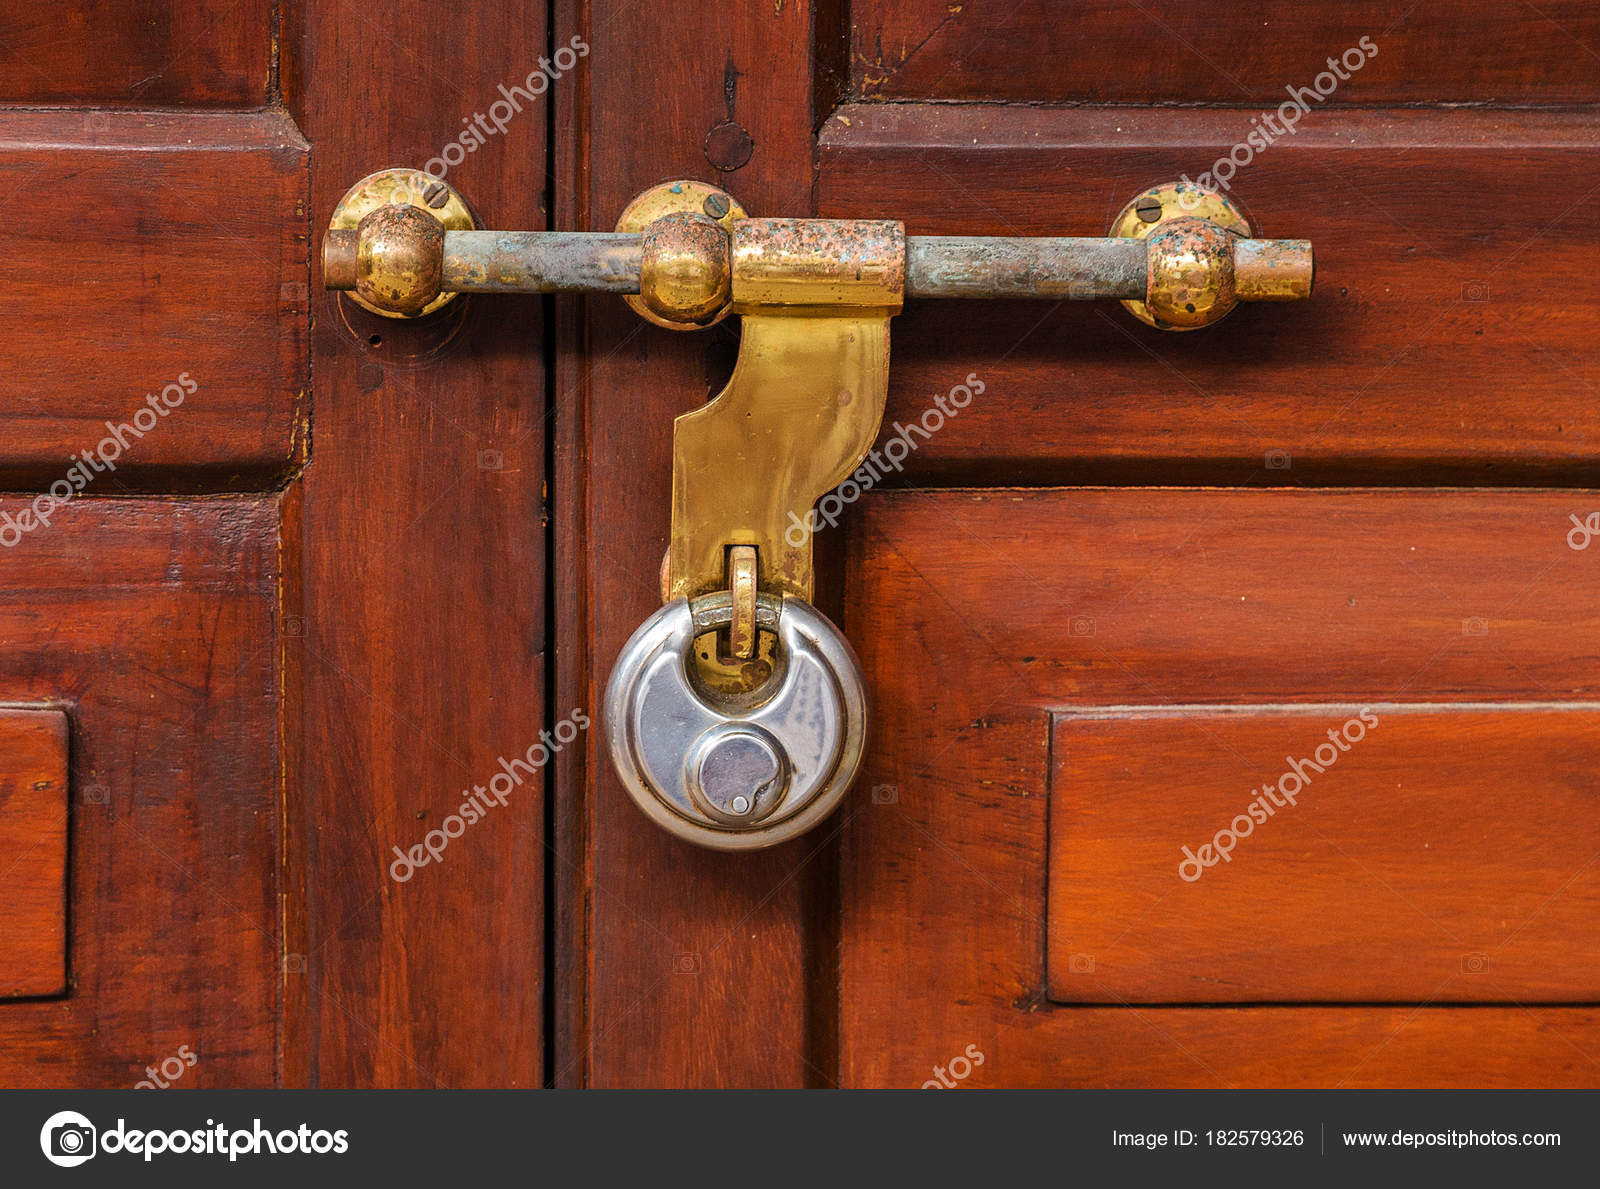 Vintage door handle old fashioned locks stock photo - Old fashioned interior door locks ...